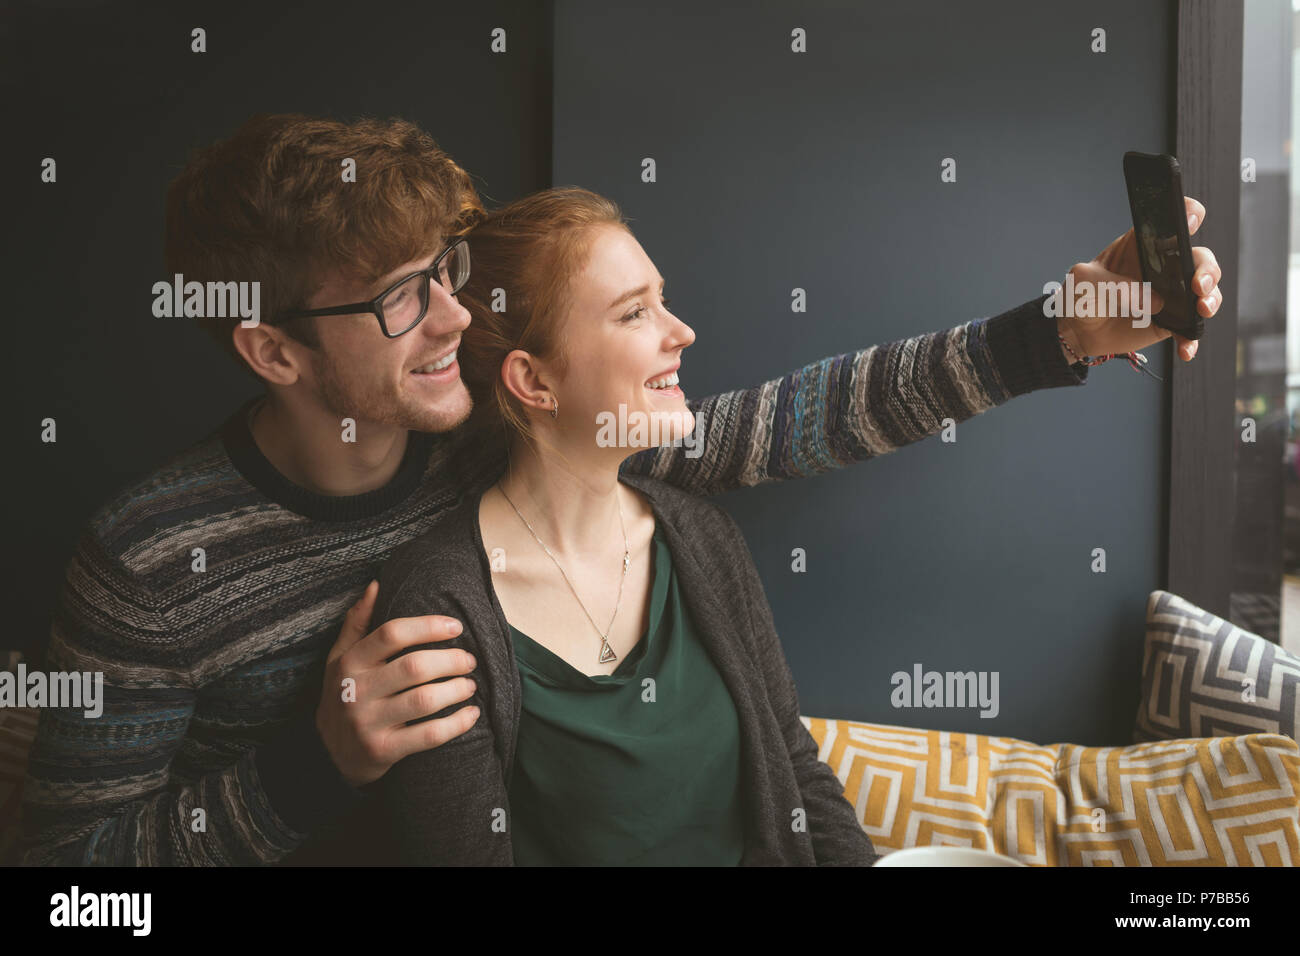 Couple taking a selfie in the cafe - Stock Image